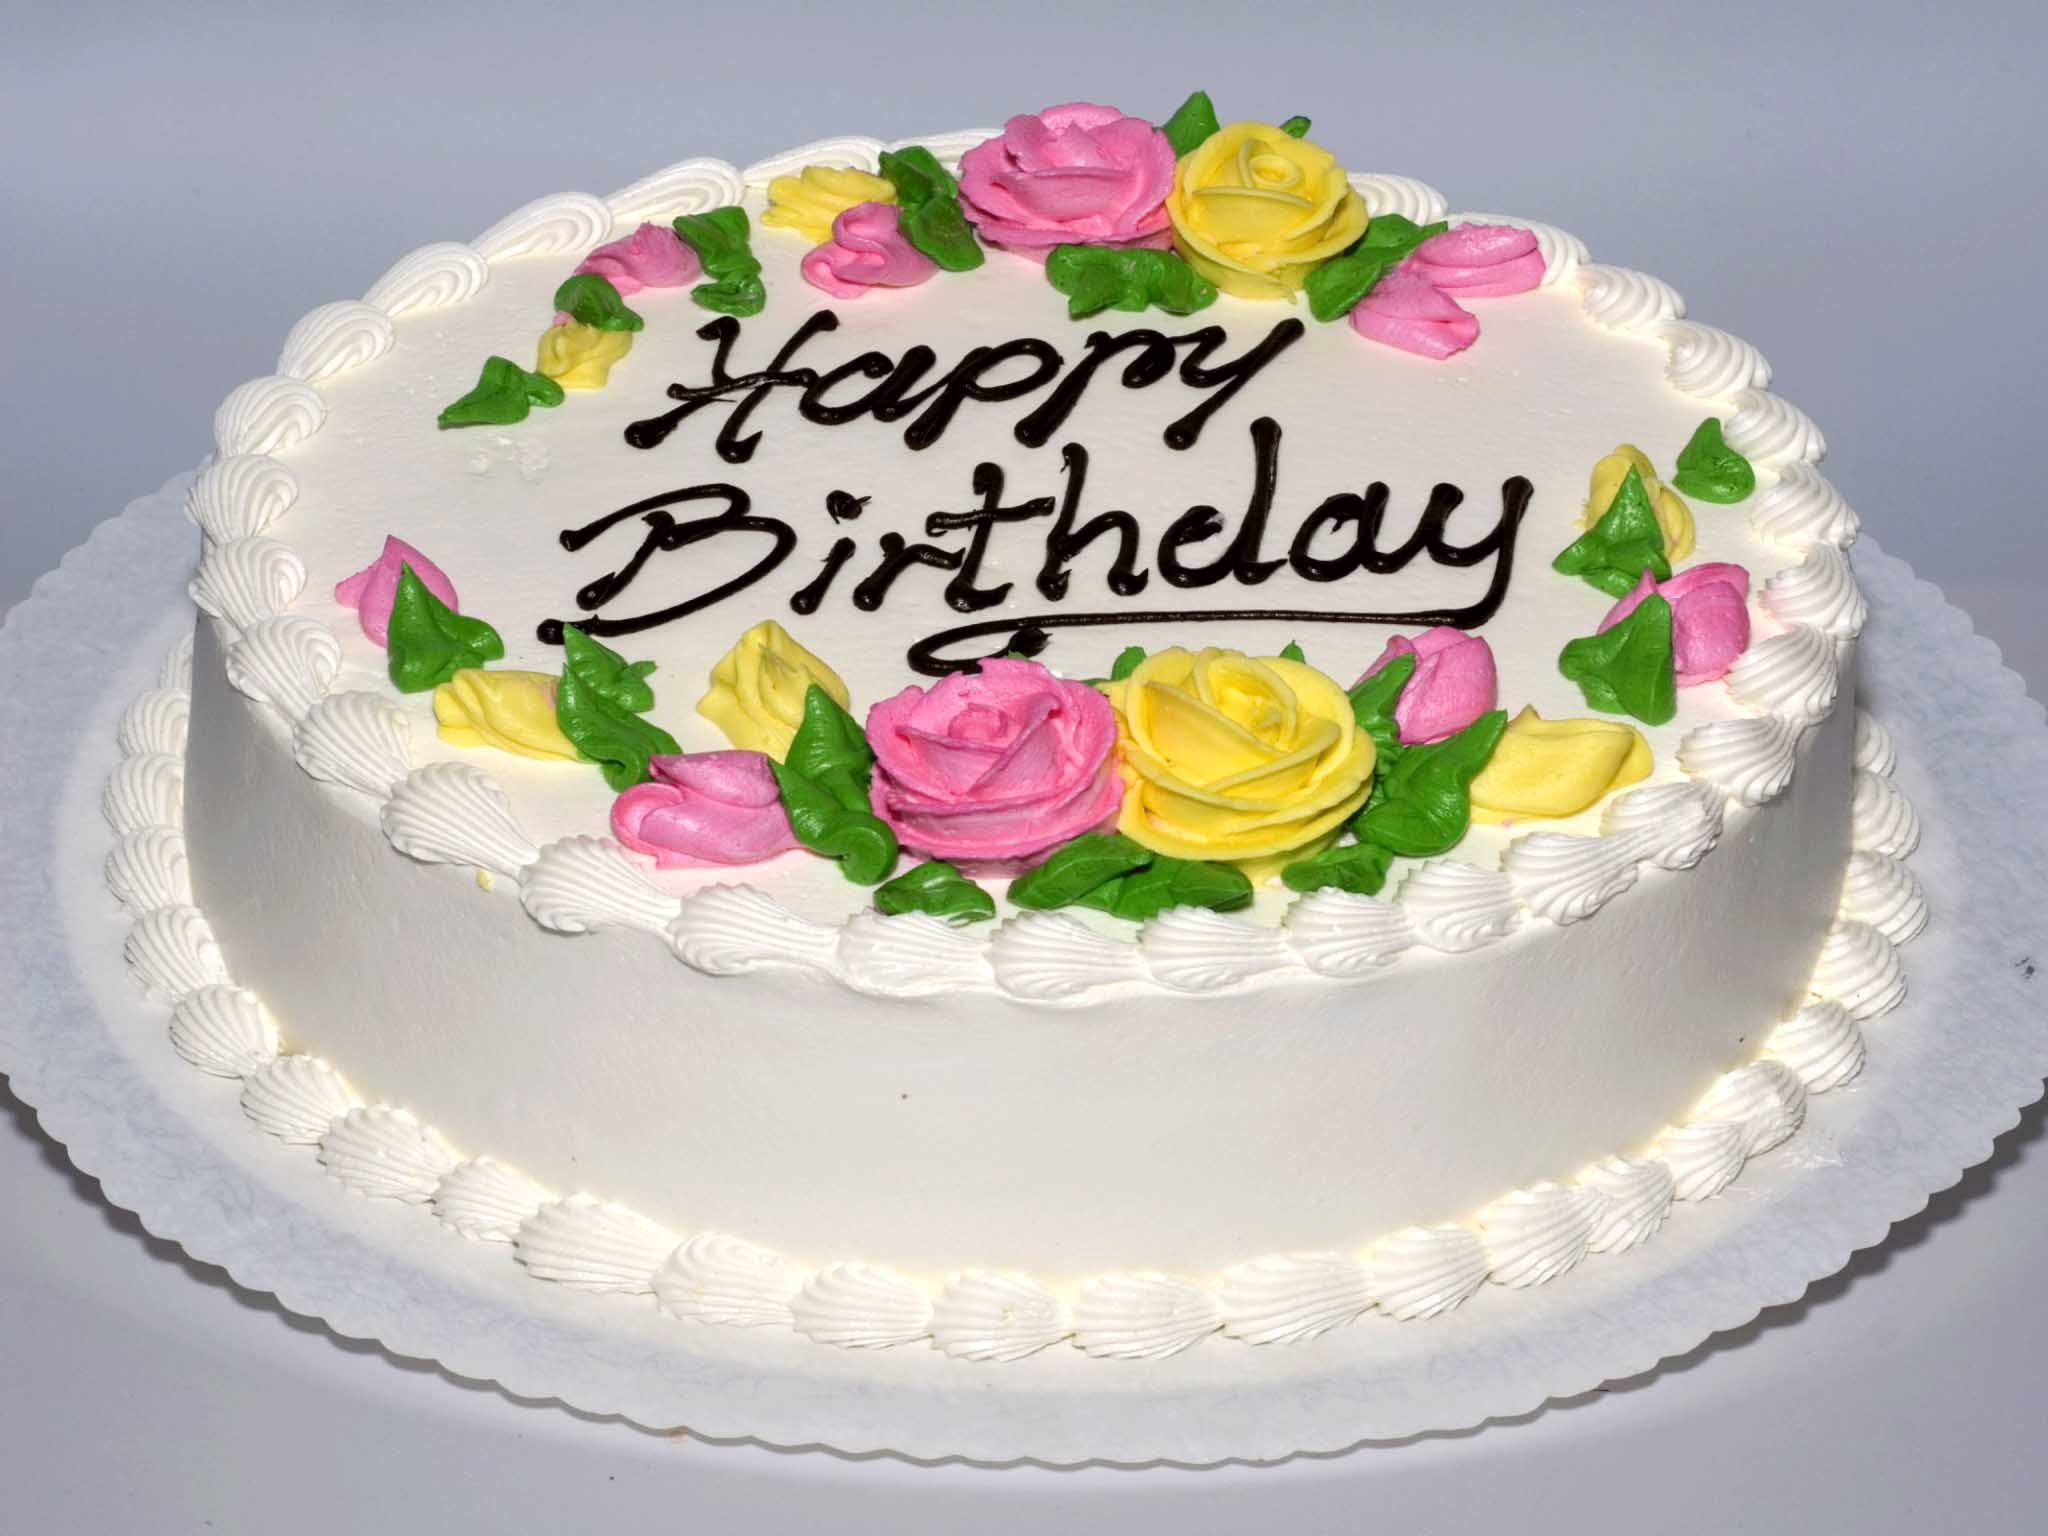 Happy Birthday Shivani Cake Photos Free Download